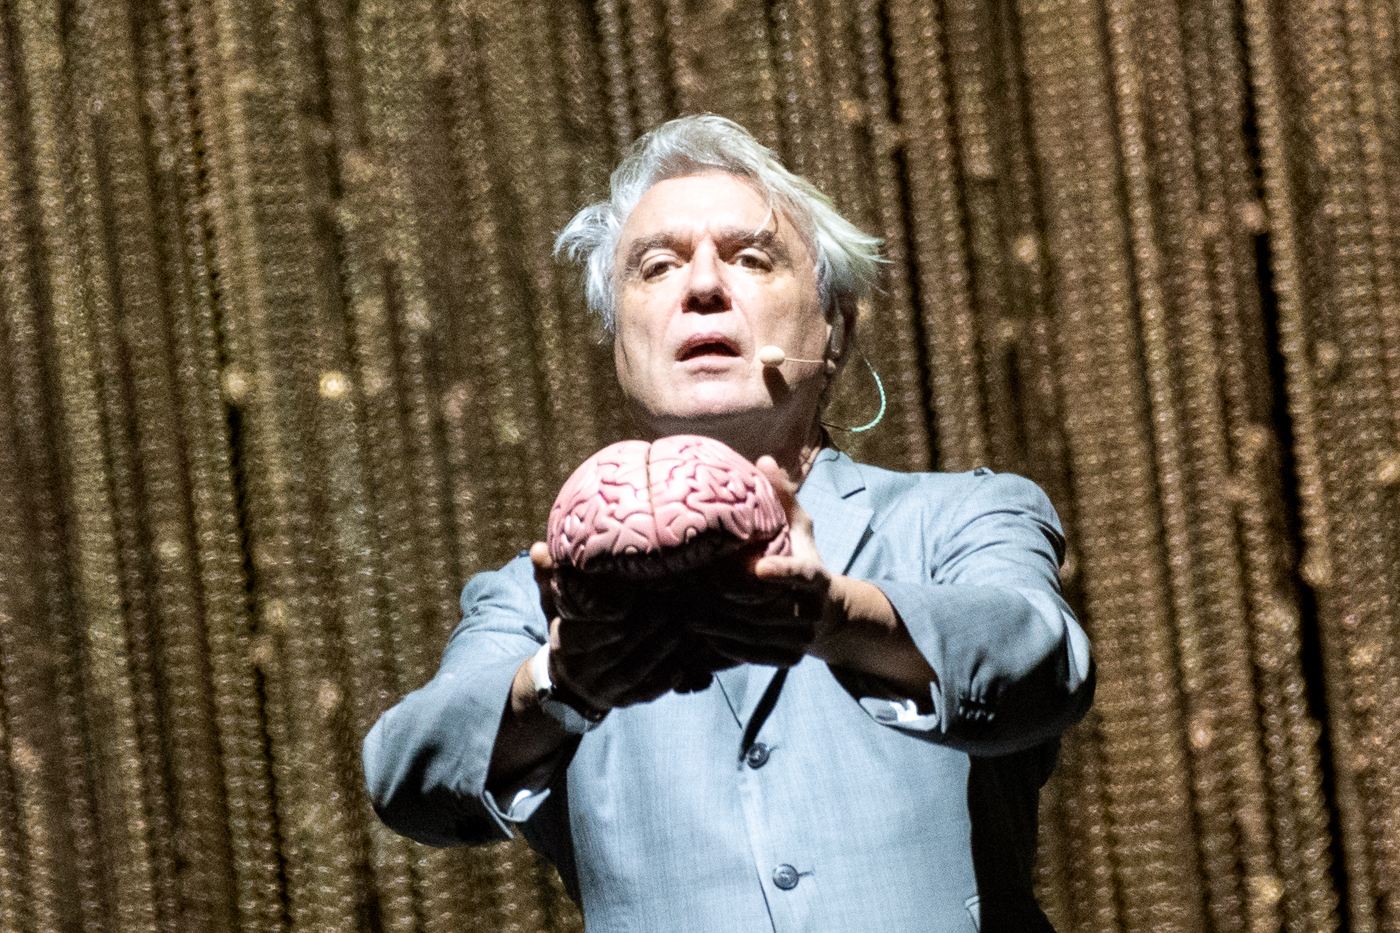 DAVID BYRNE PERFORMING AT GLASGOW'S SSE HYDRO - 22.10.2018  PICTURE BY: ROBERTO RICCUITI PHOTOGRAPHY